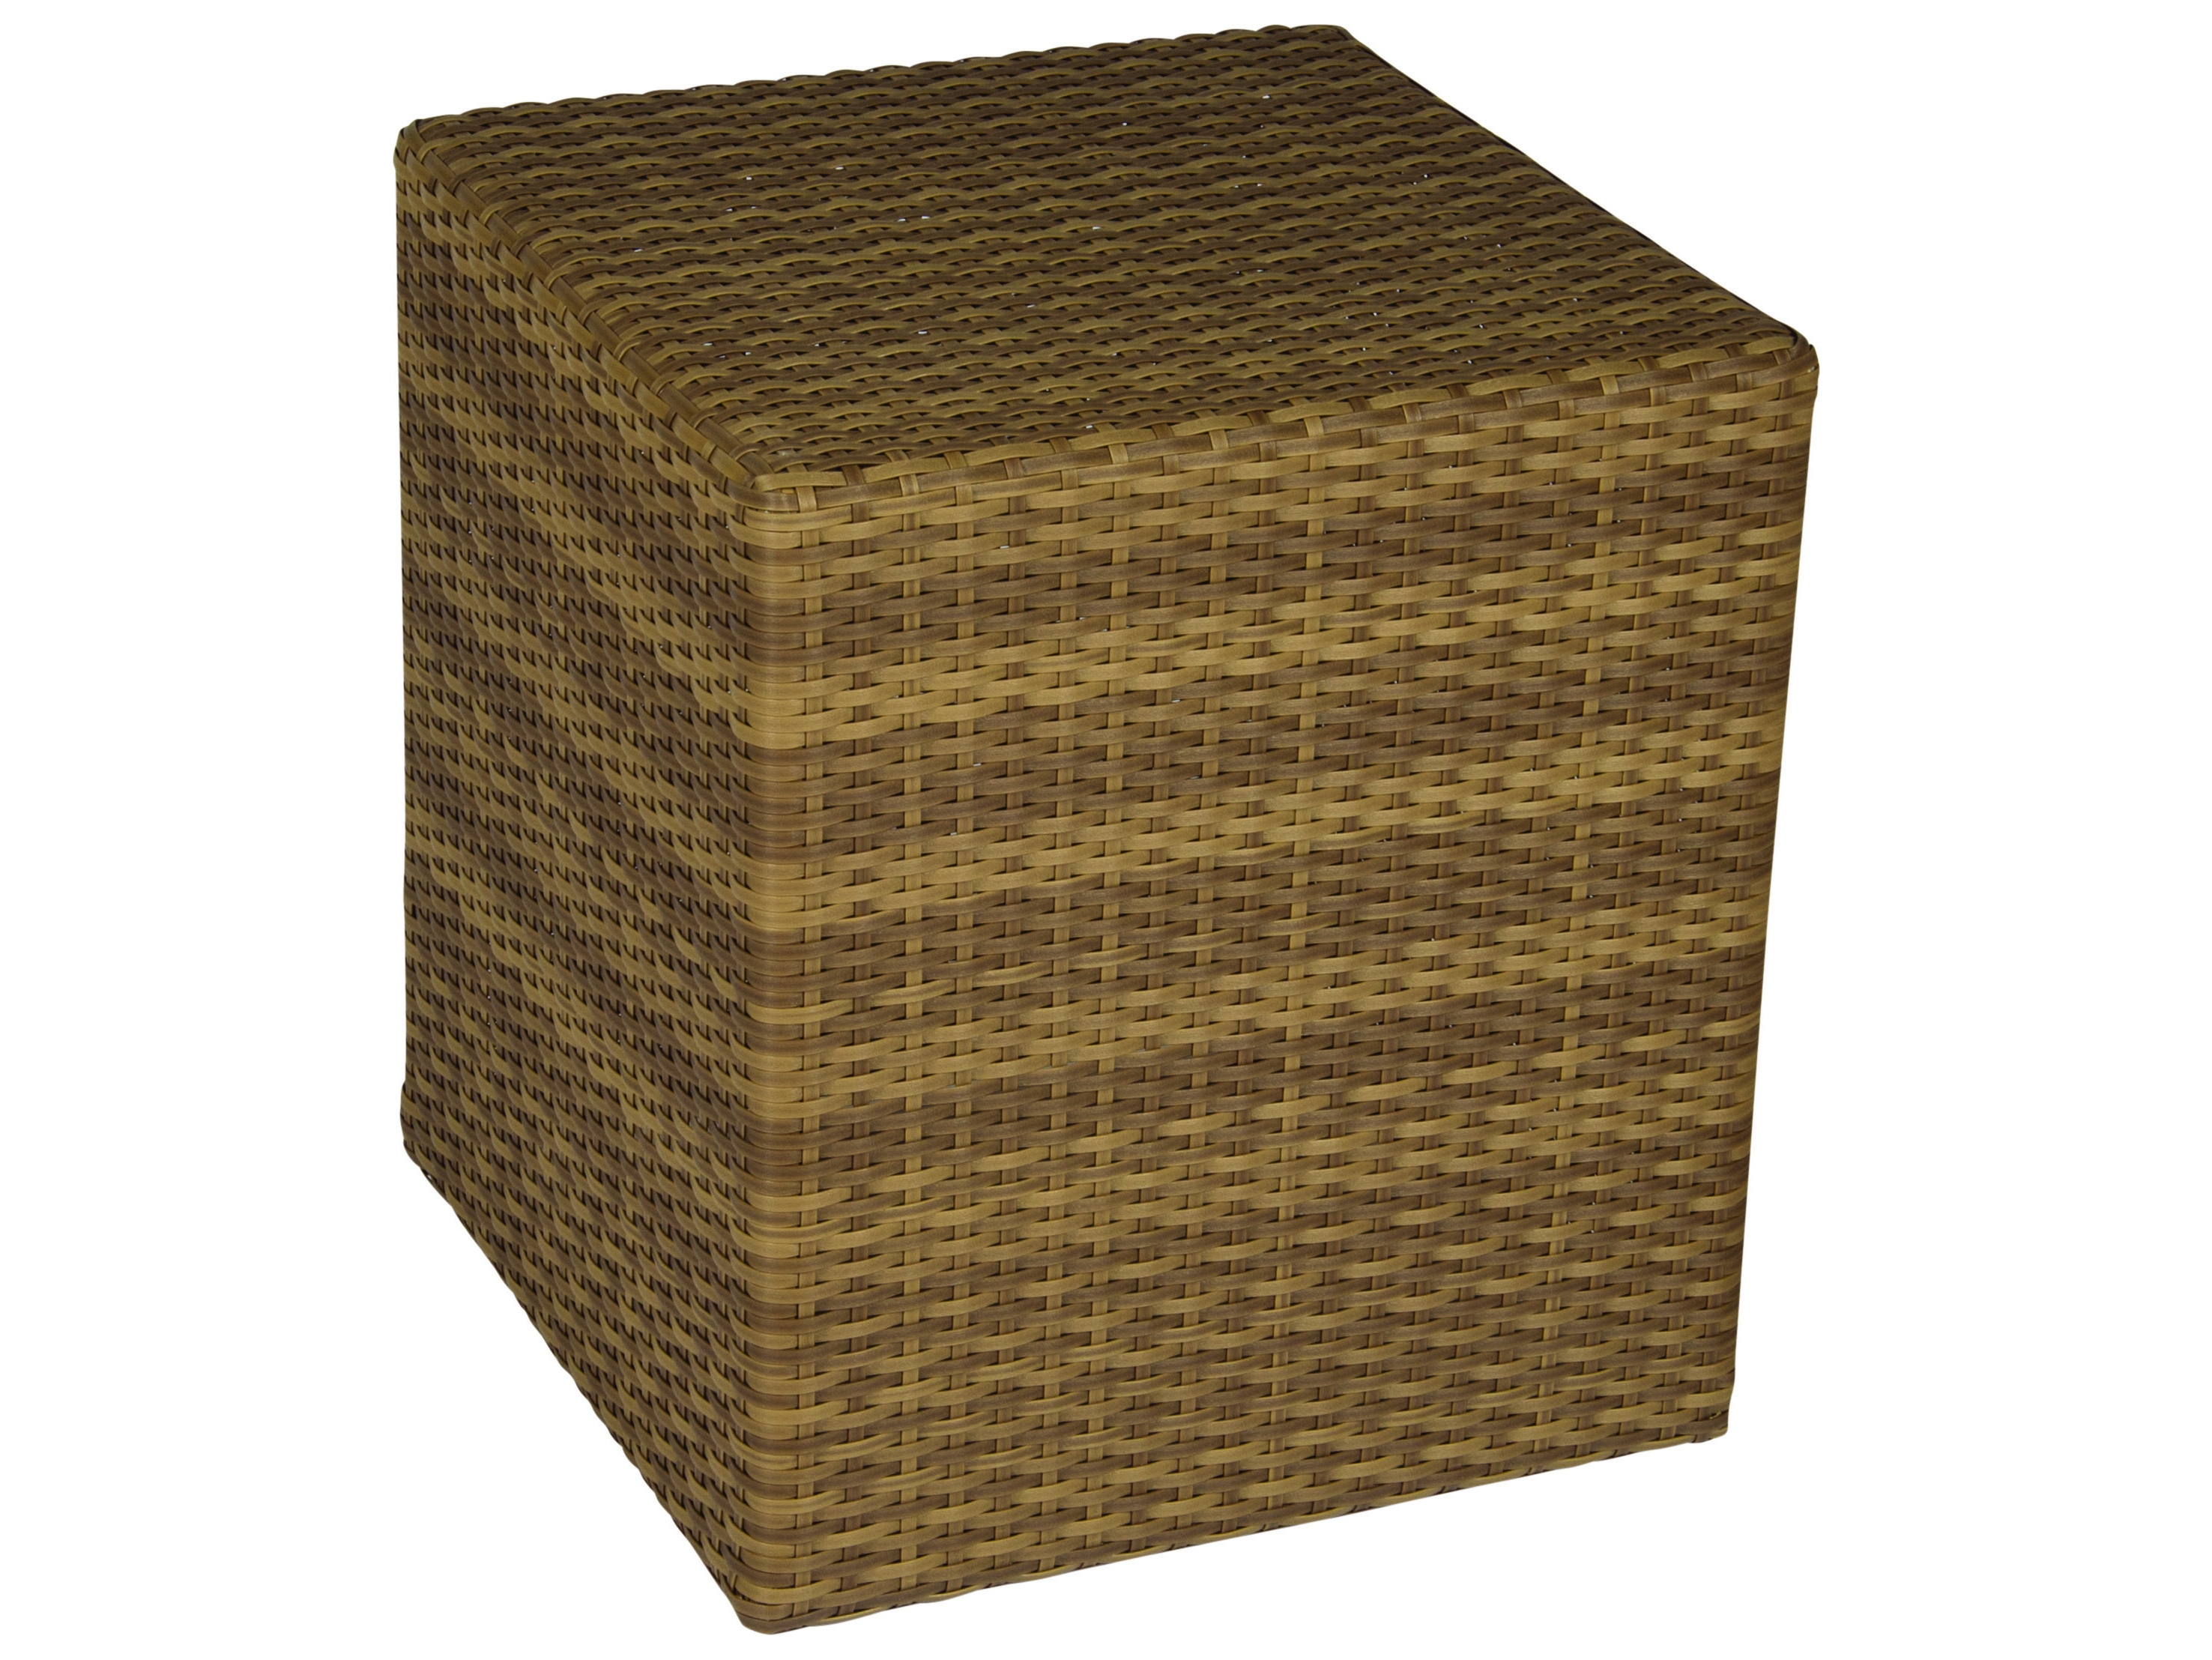 Whitecraft Saddleback Wicker Square 18 End Table